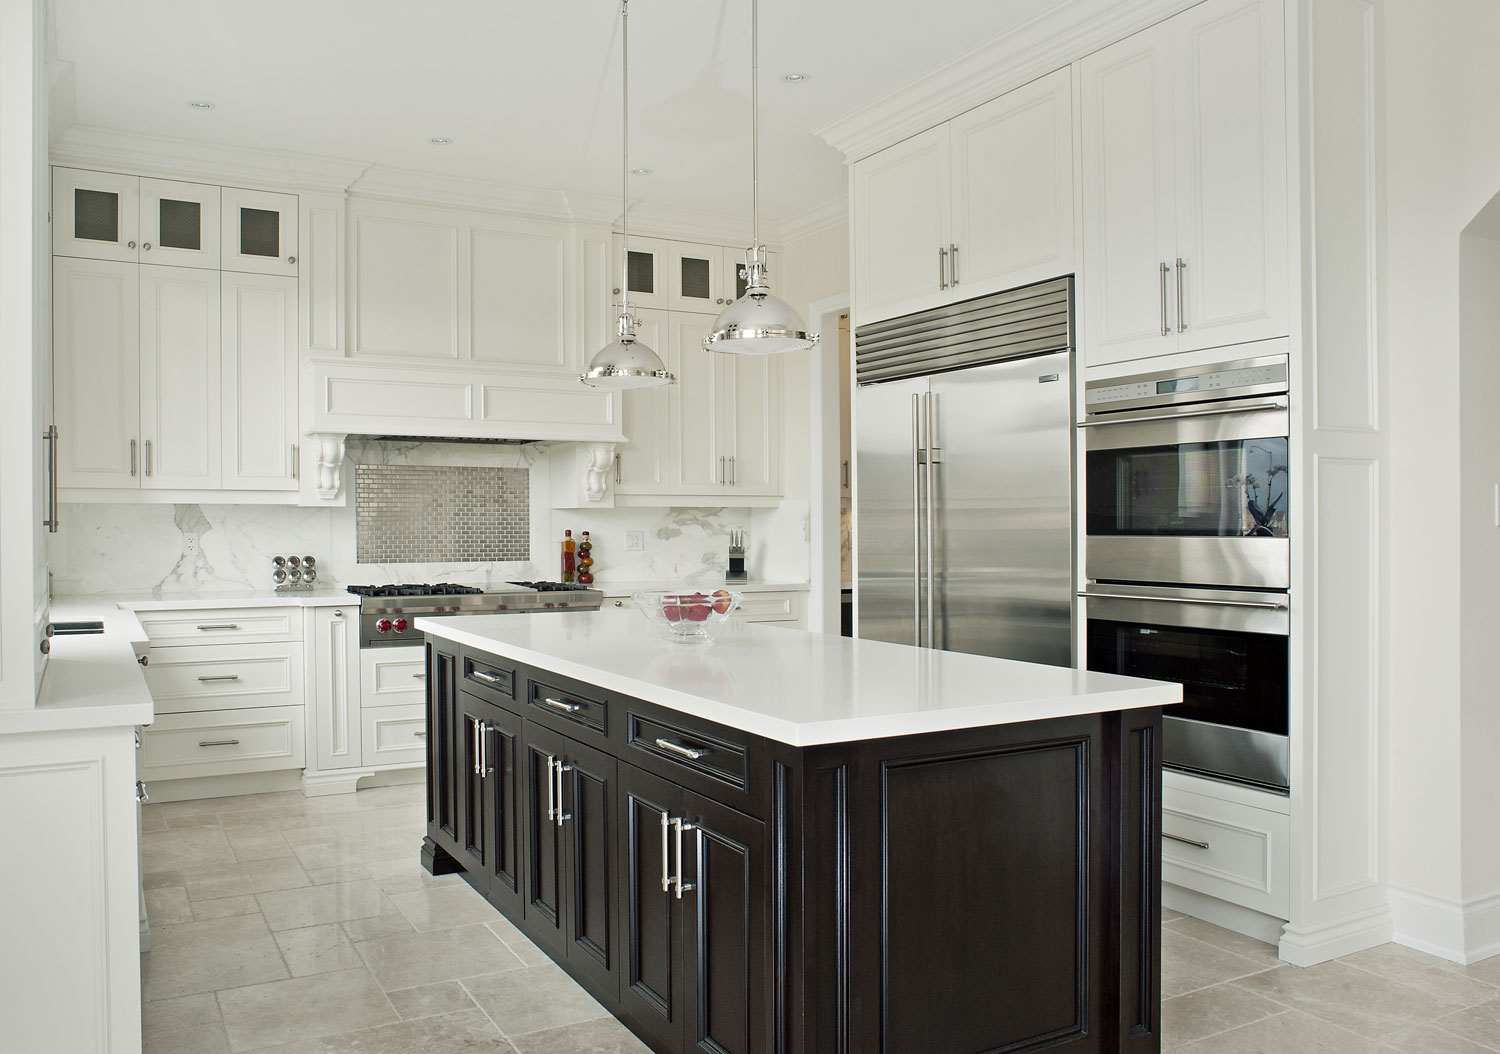 Calstock brampton custom kitchen and bathroom cabinetry for Brampton kitchen cabinets